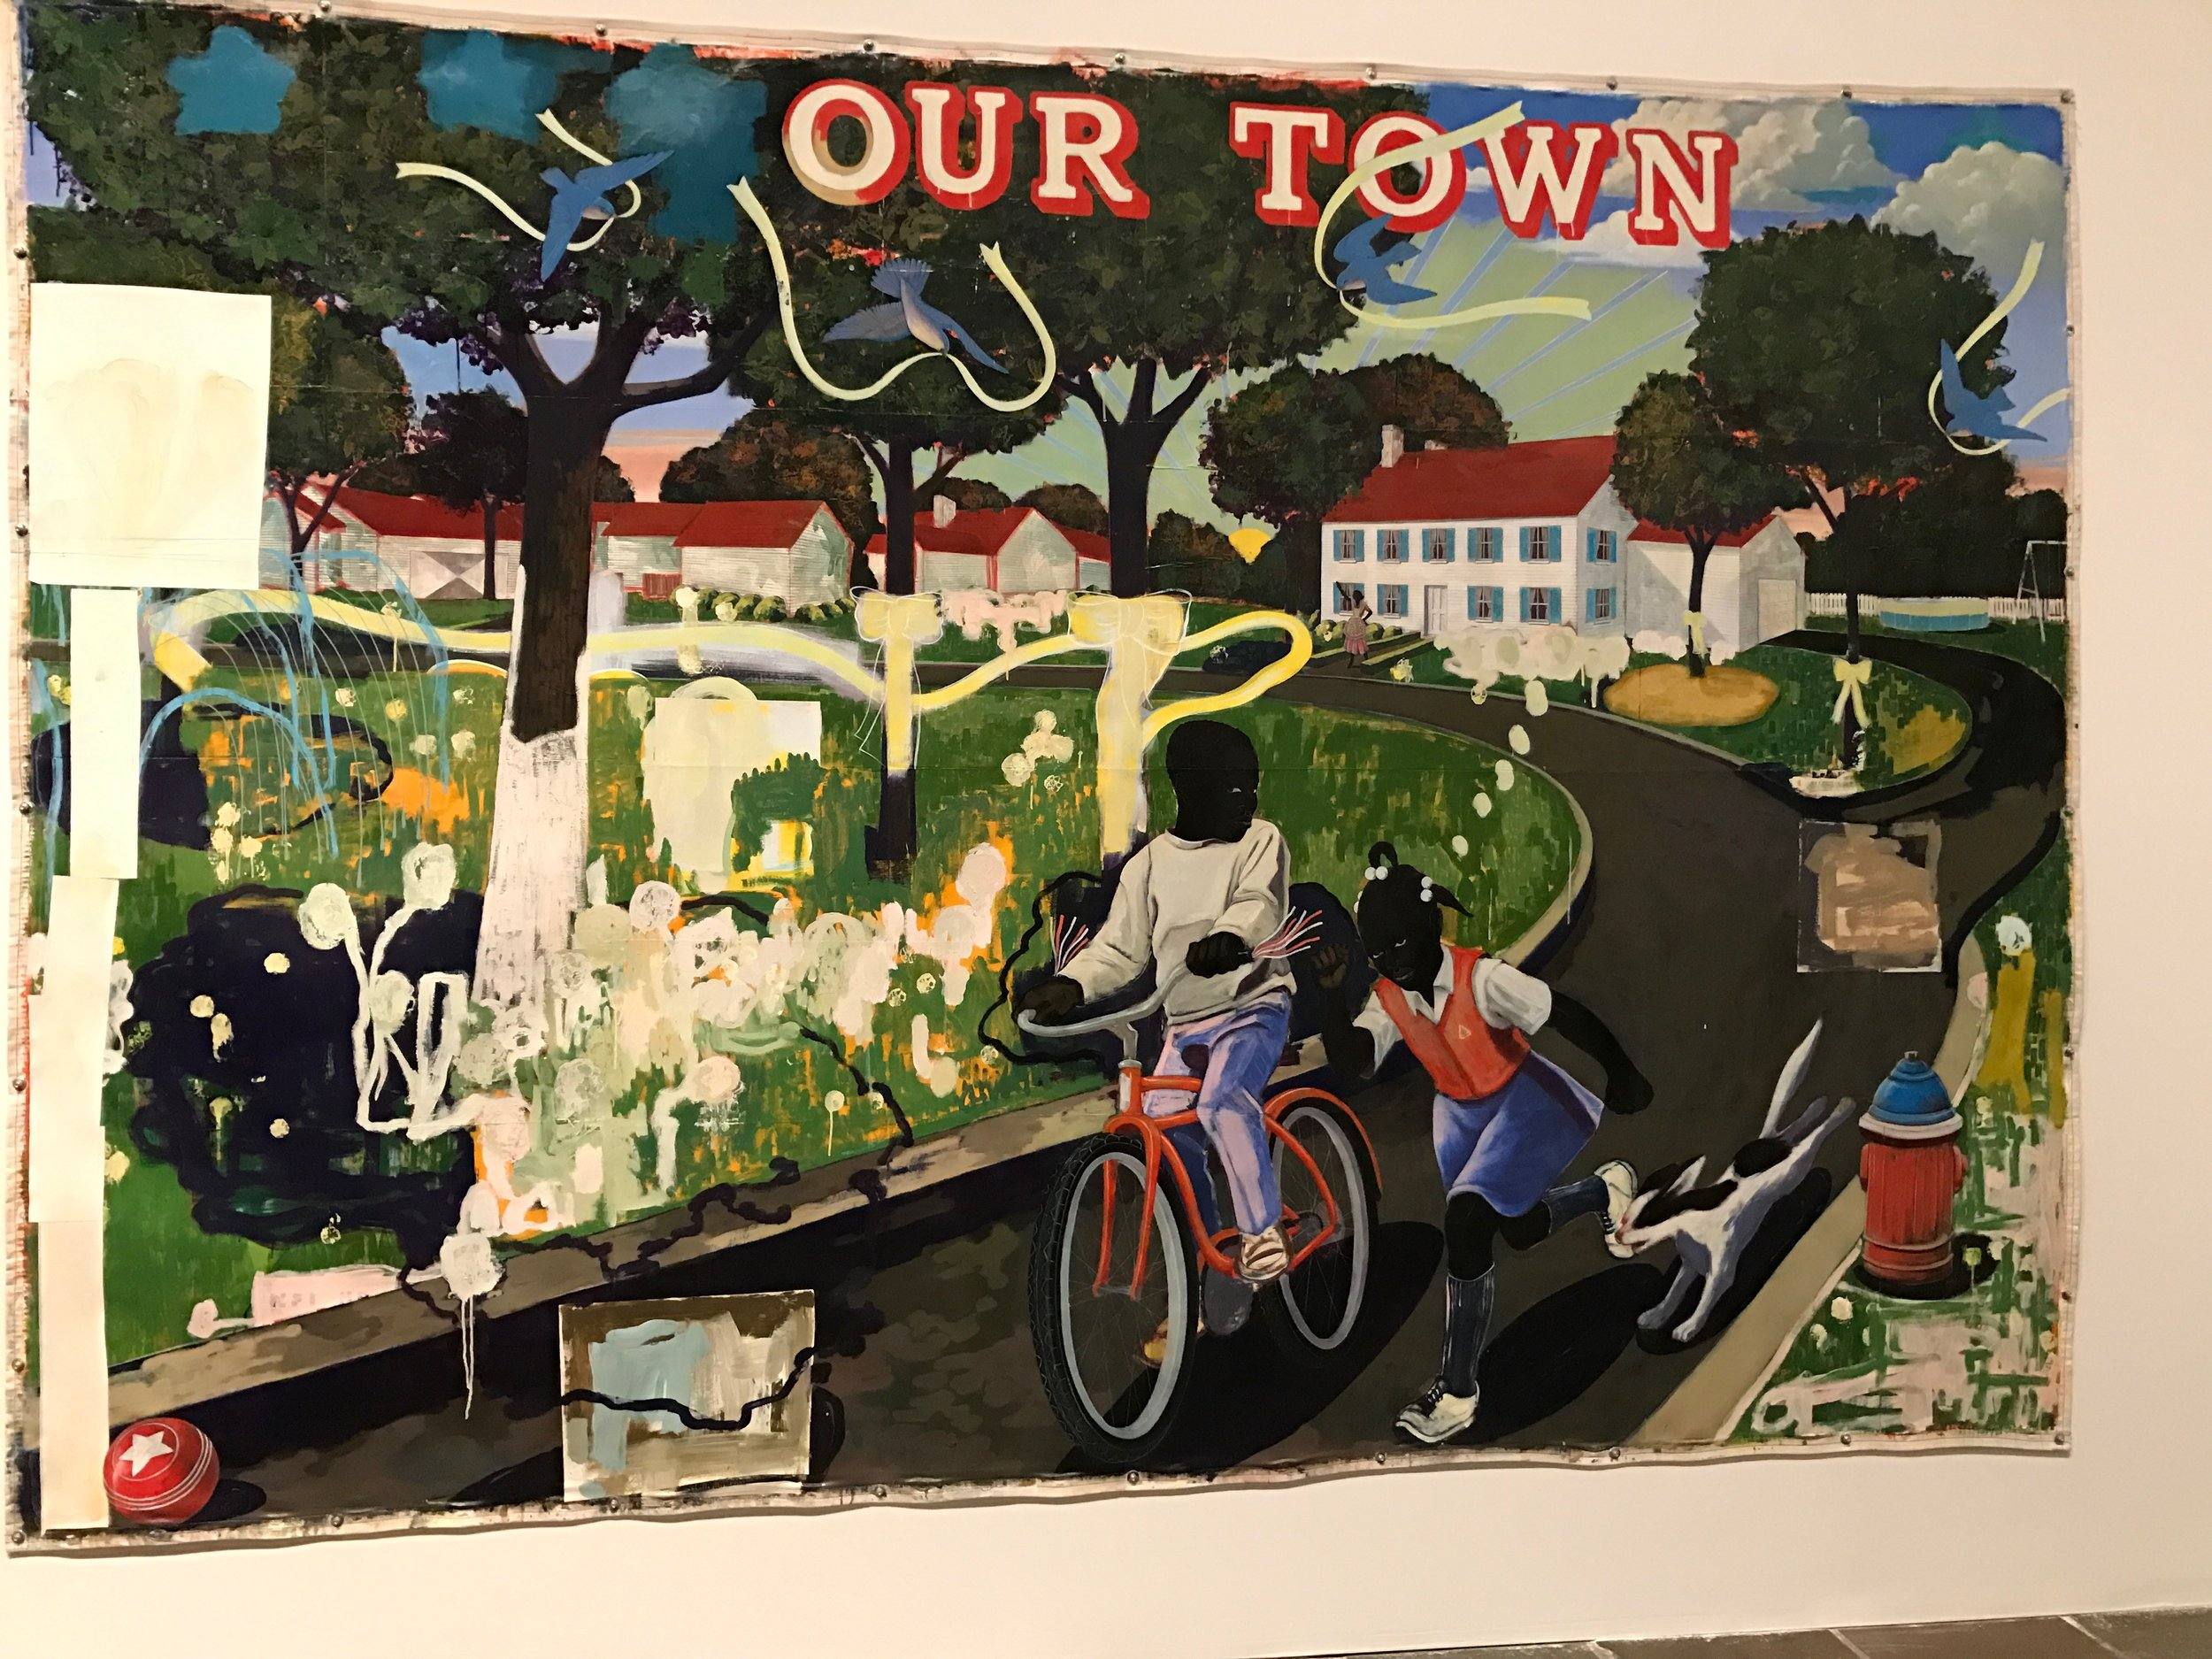 Our Town (1995) by Kerry James Marshall, as seen in The Met Breuer's exhibition  Mastry  (October 25, 2016 - January 29, 2017)